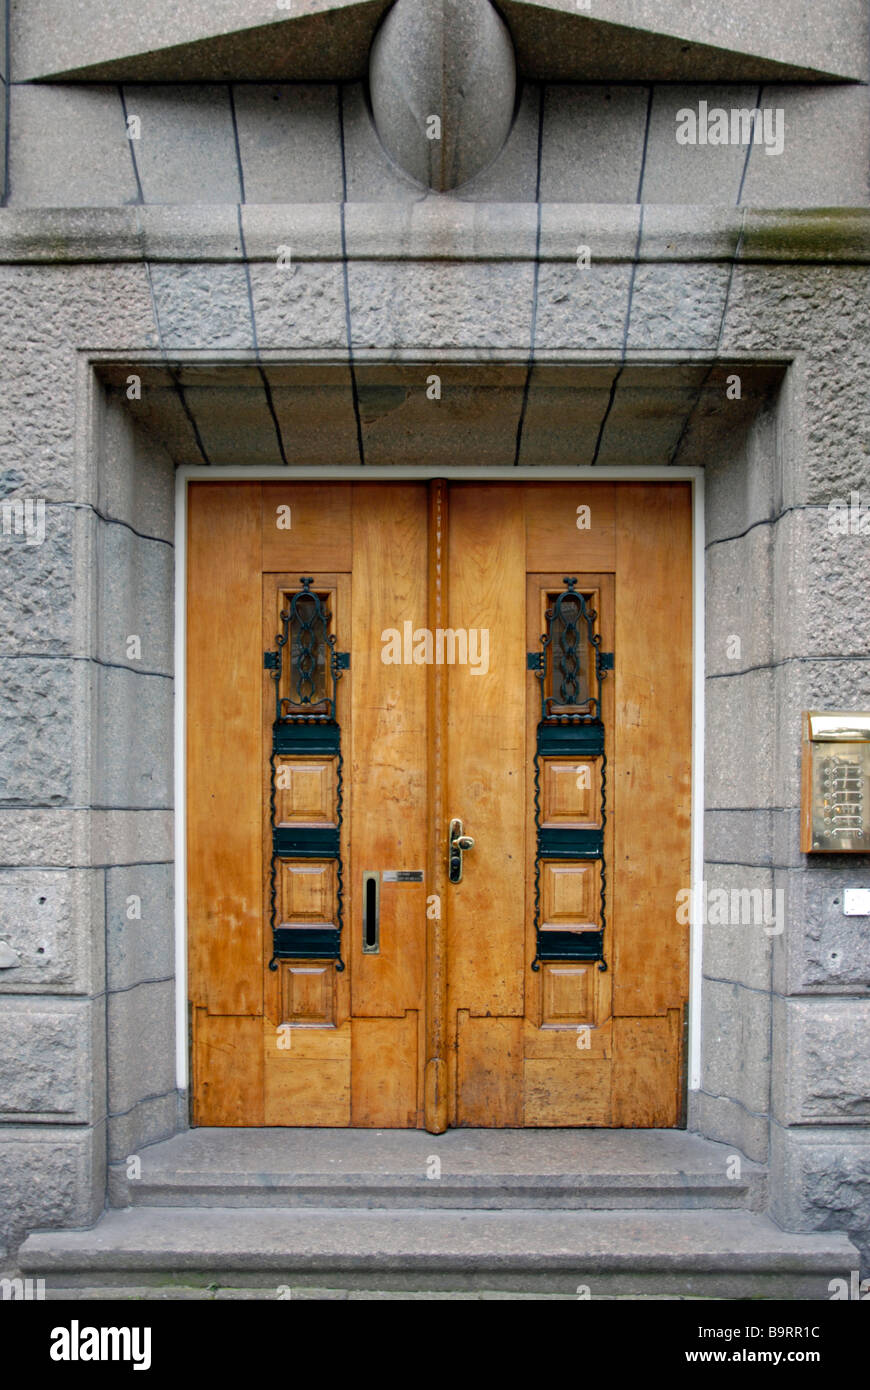 Characteristic Dutch Carved Wooden Doors Amsterdam - Stock Image